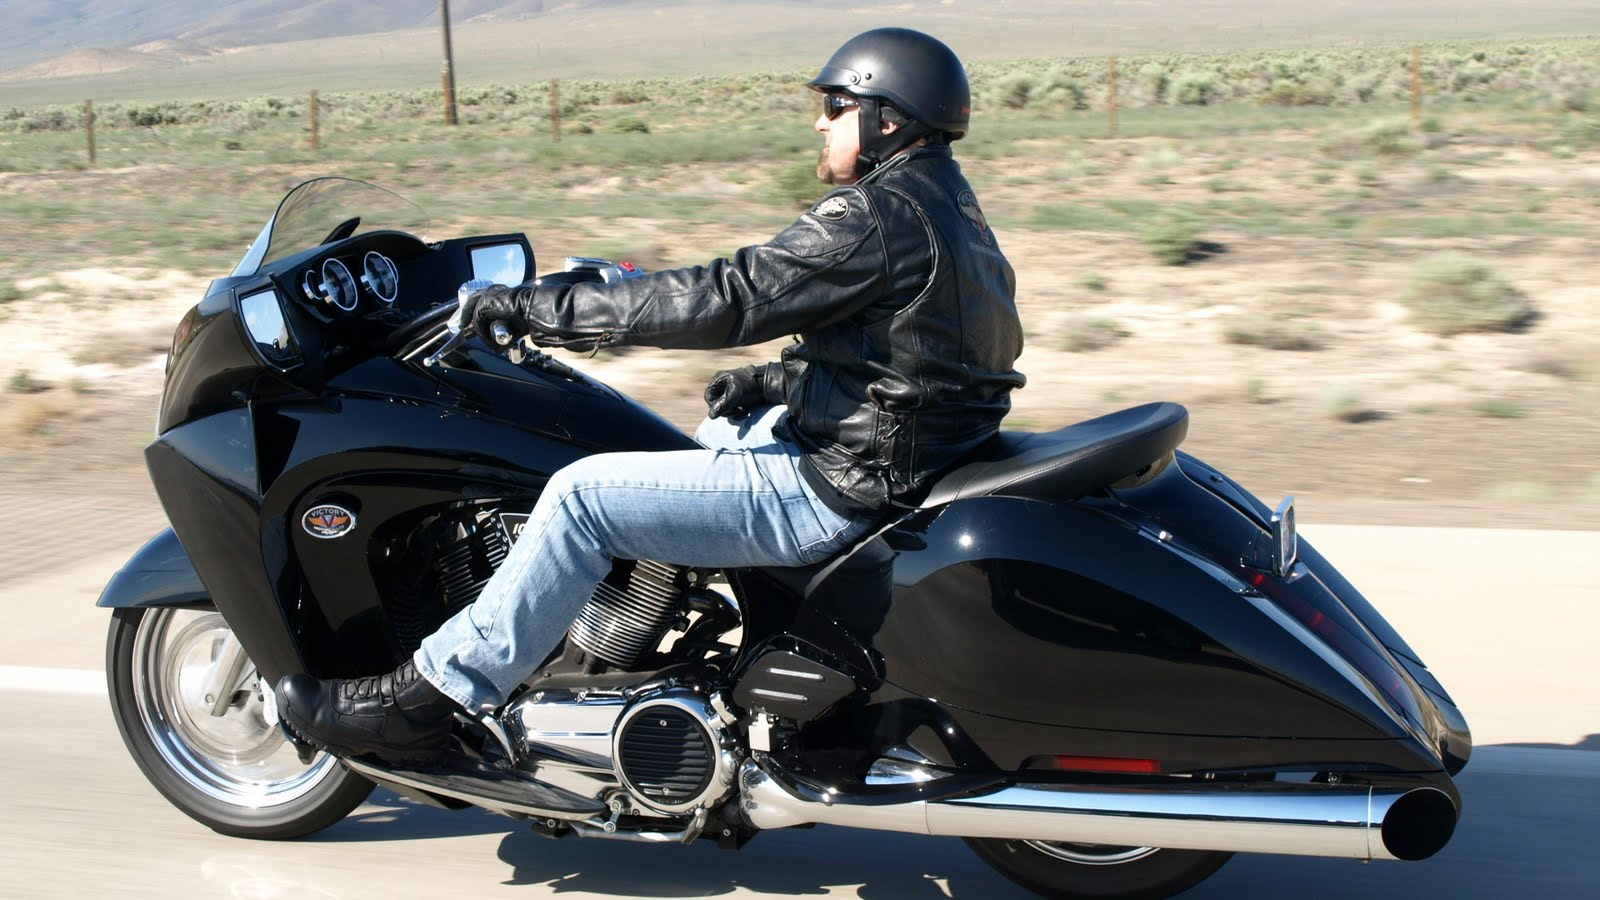 Baywire: Victory Vision Motorcycle Guide for Riders